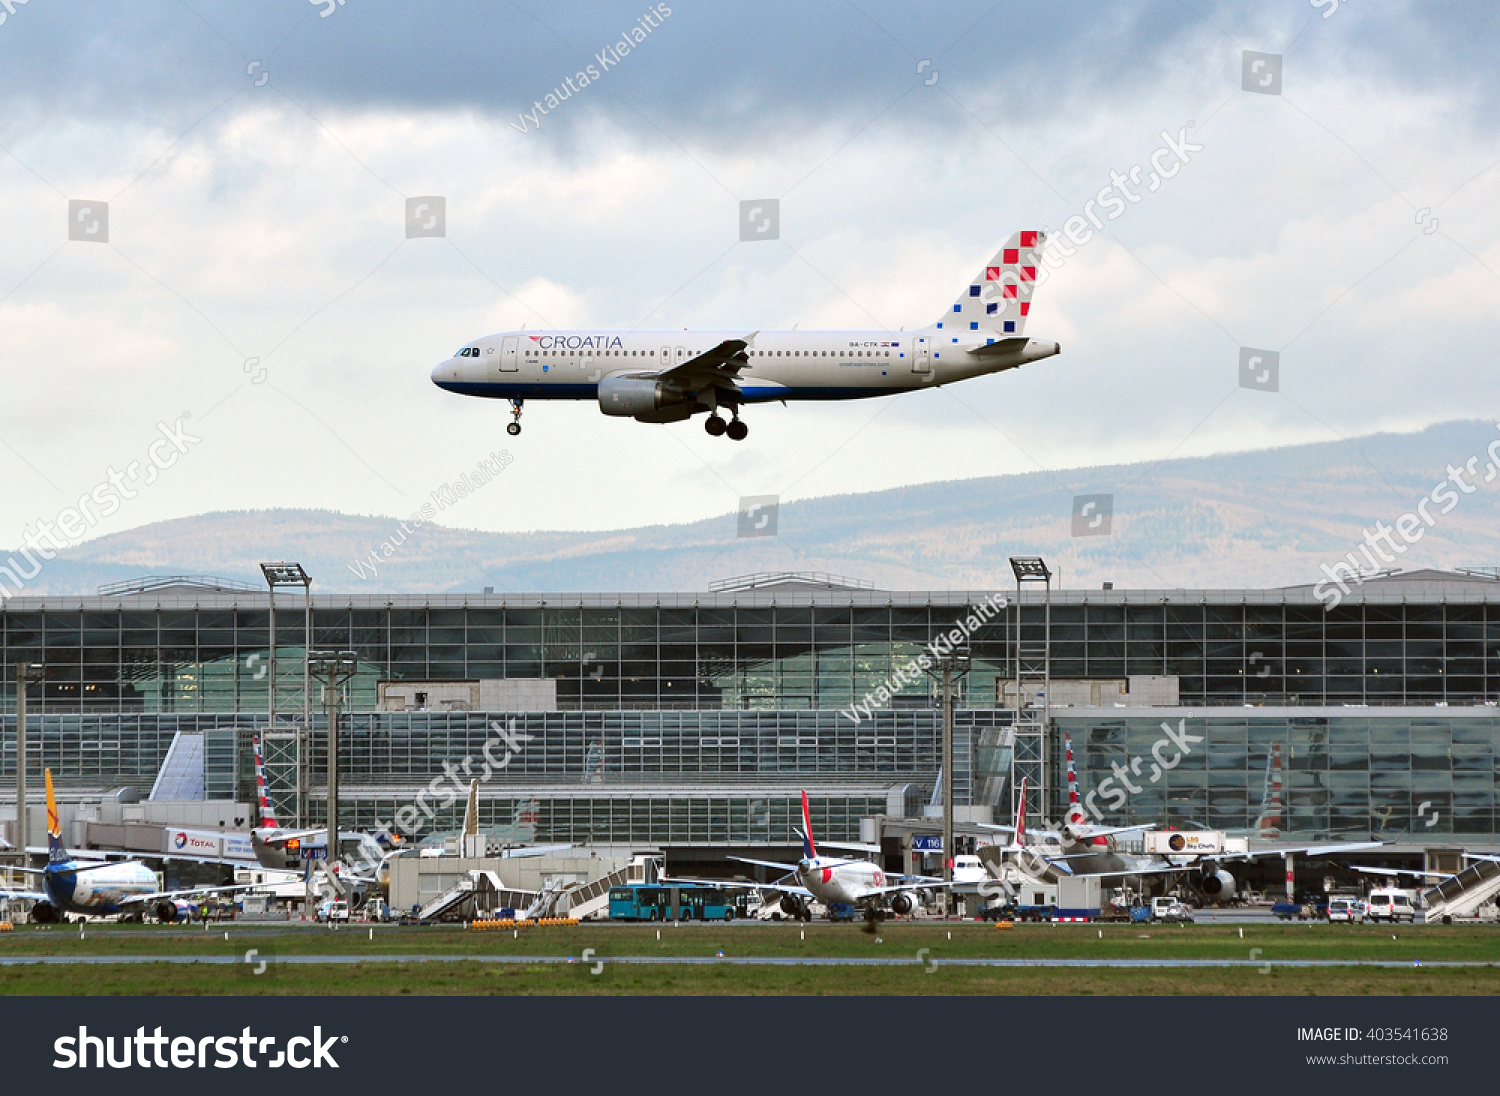 frankfurtgermanyapril 07airplane croatia airlines above frankfurt stock photo 403541638. Black Bedroom Furniture Sets. Home Design Ideas